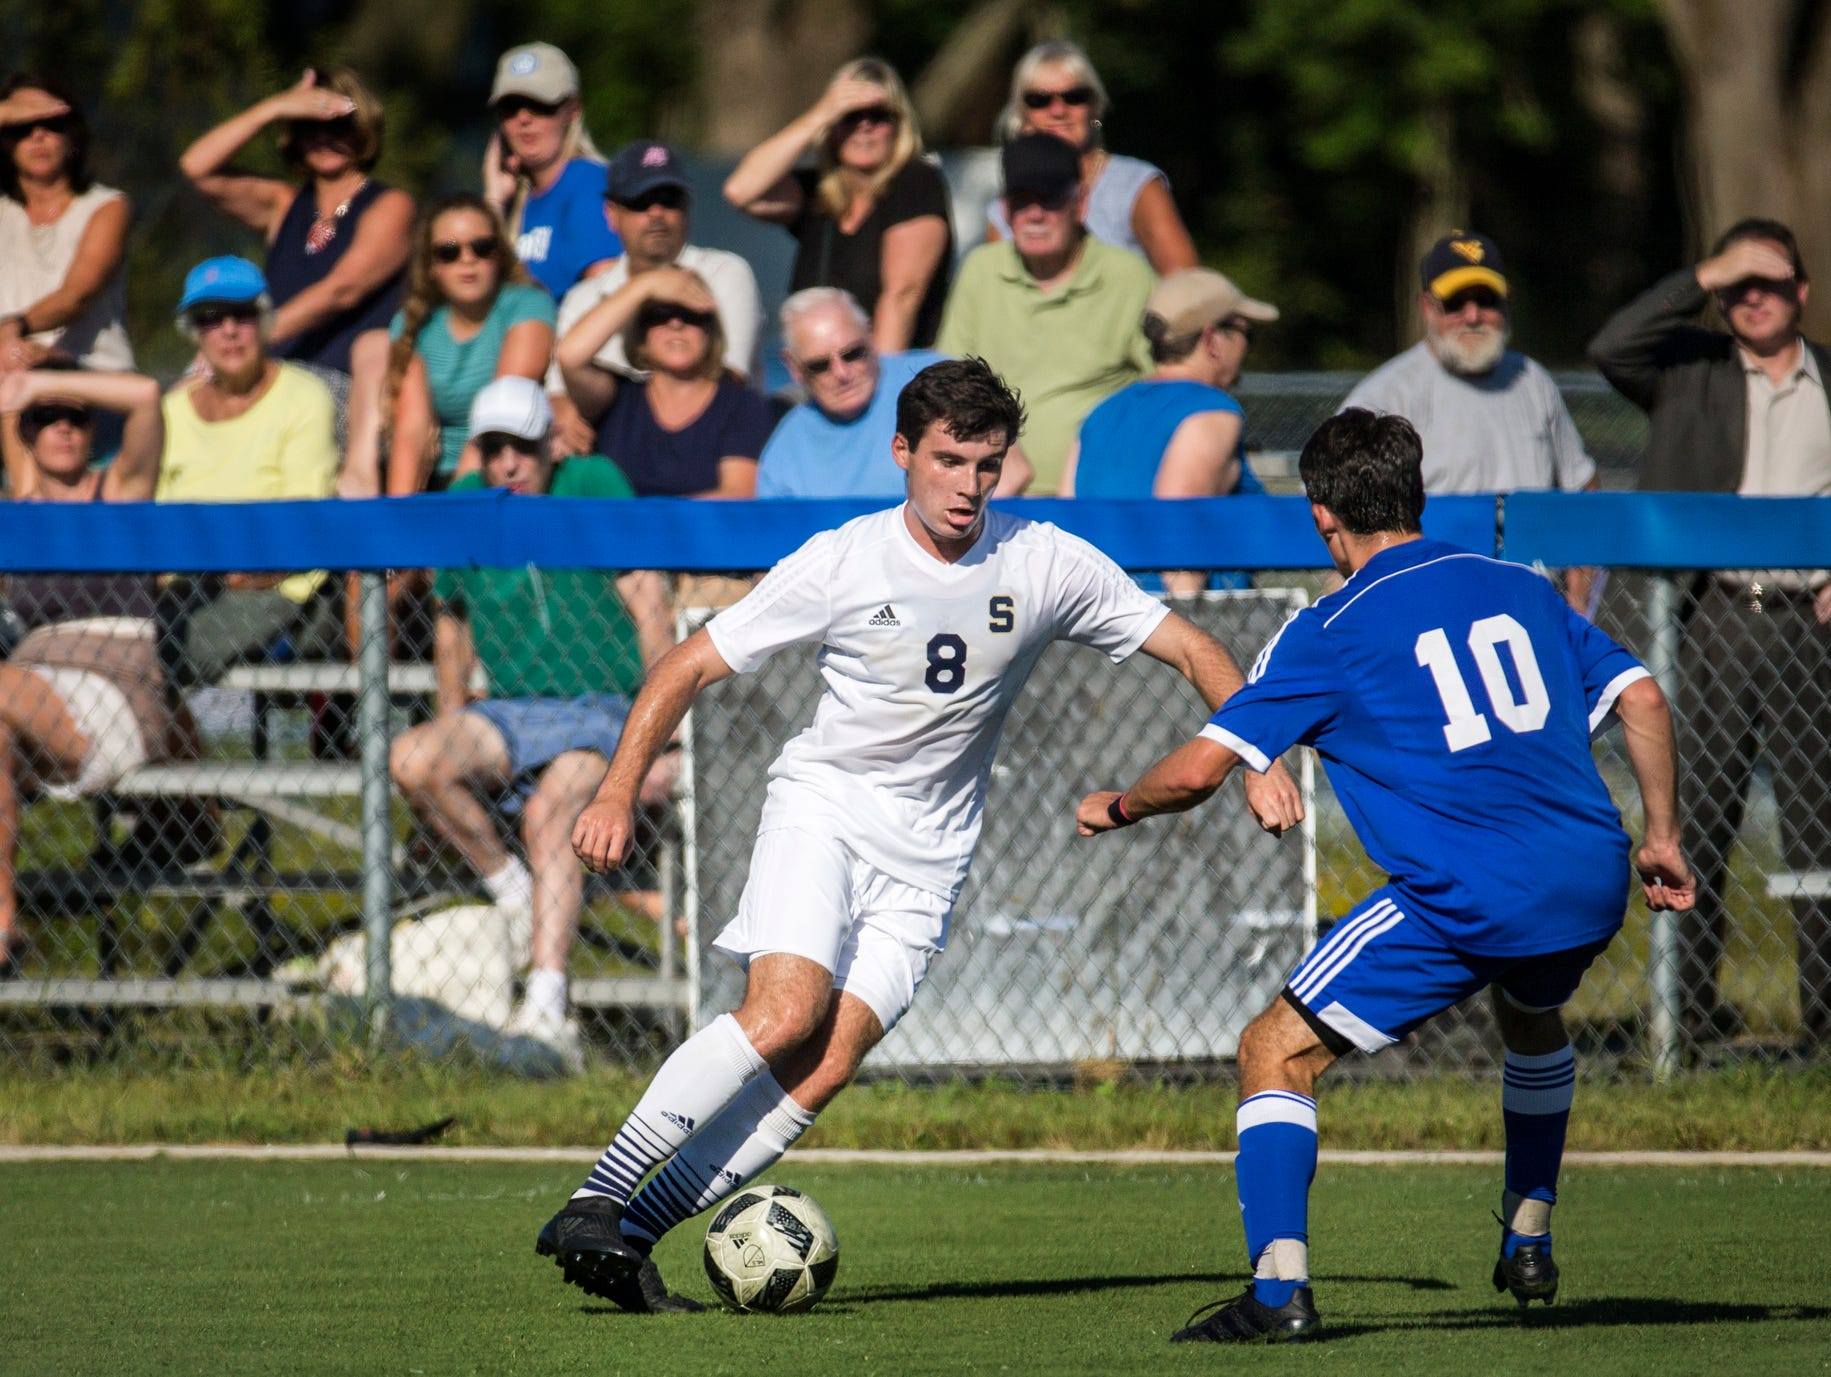 Salesianum's James Strine (No. 9) cuts past Wilmington Charter's Patrick O'Connor (No. 10) in the first half of Salesianum's 1-0 win over Wilmington Charter at the Hockessin Soccer Club in Hockessin on Thursday afternoon.